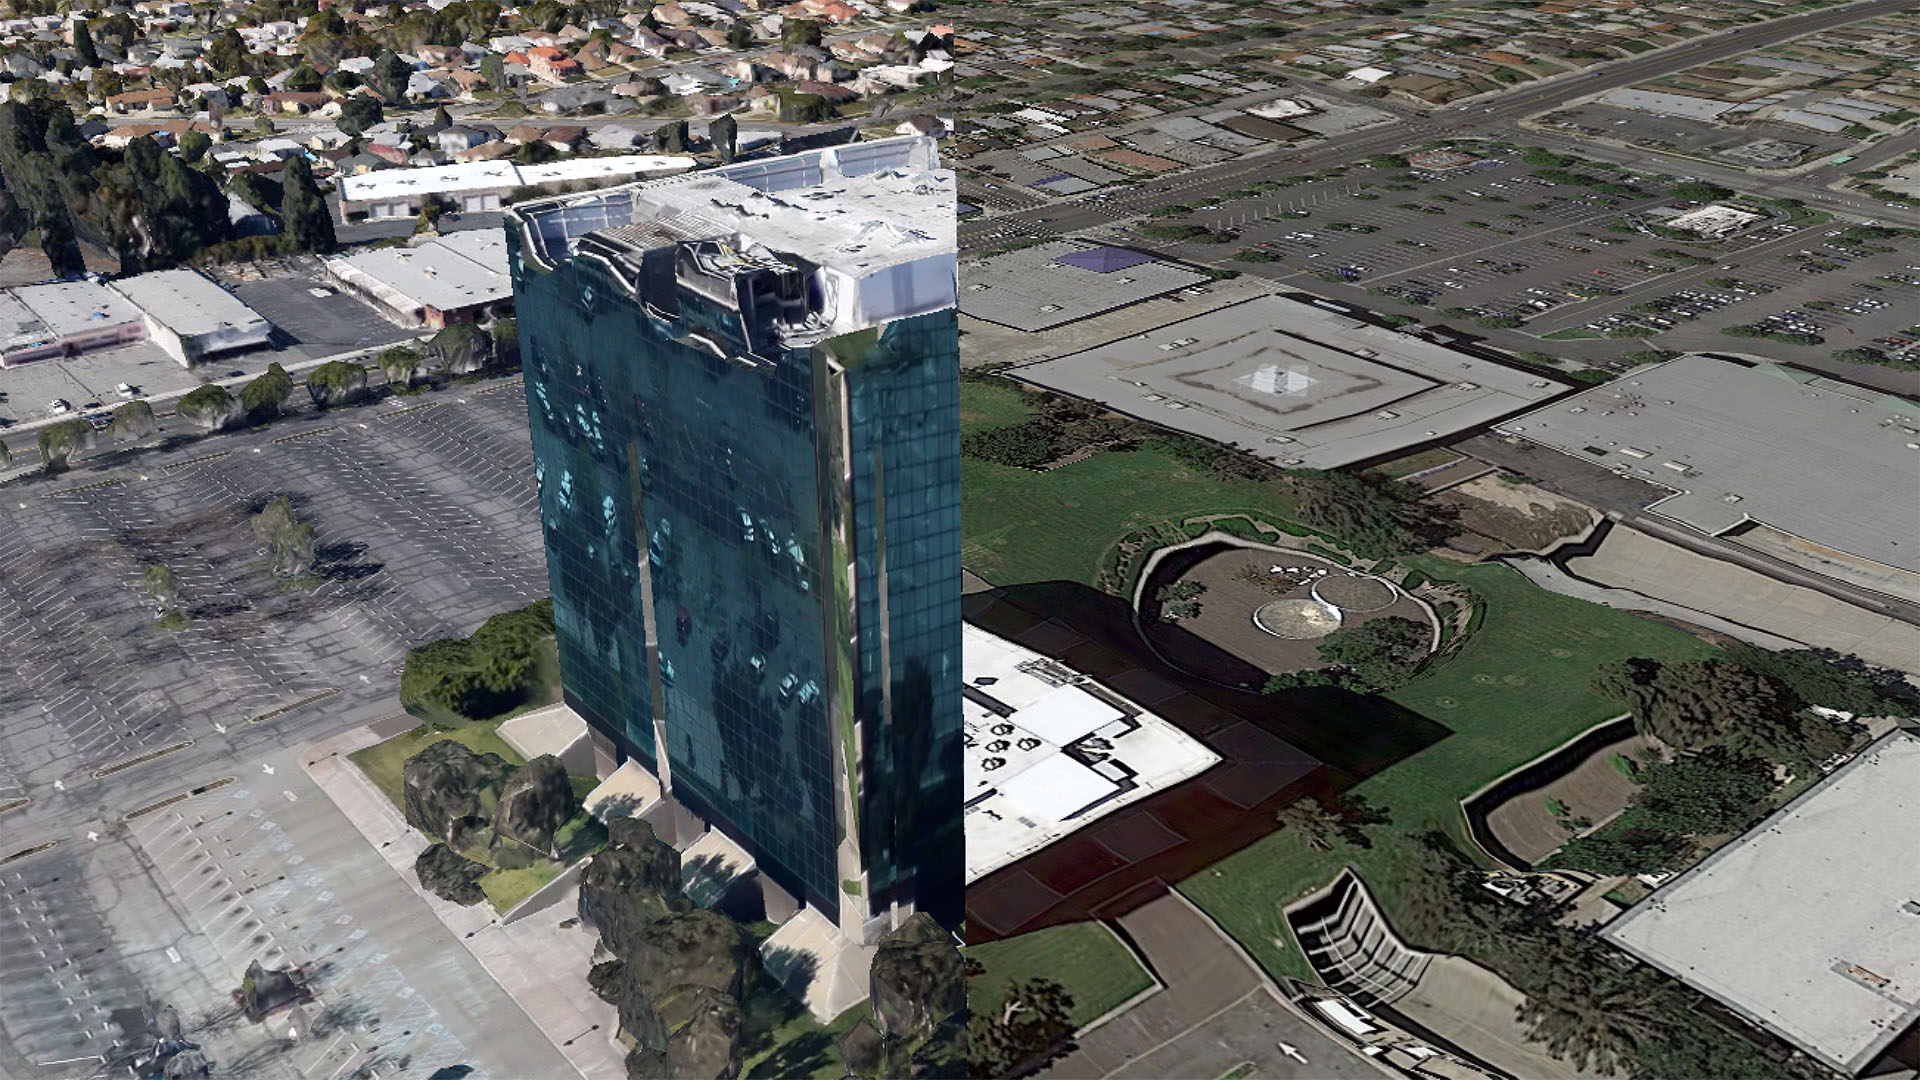 The Los Angeles County Department of Public Works headquarters building in Alhambra, CA, which straddles the frontier of resolution, as rendered in Google Earth 7.1.2.2041.